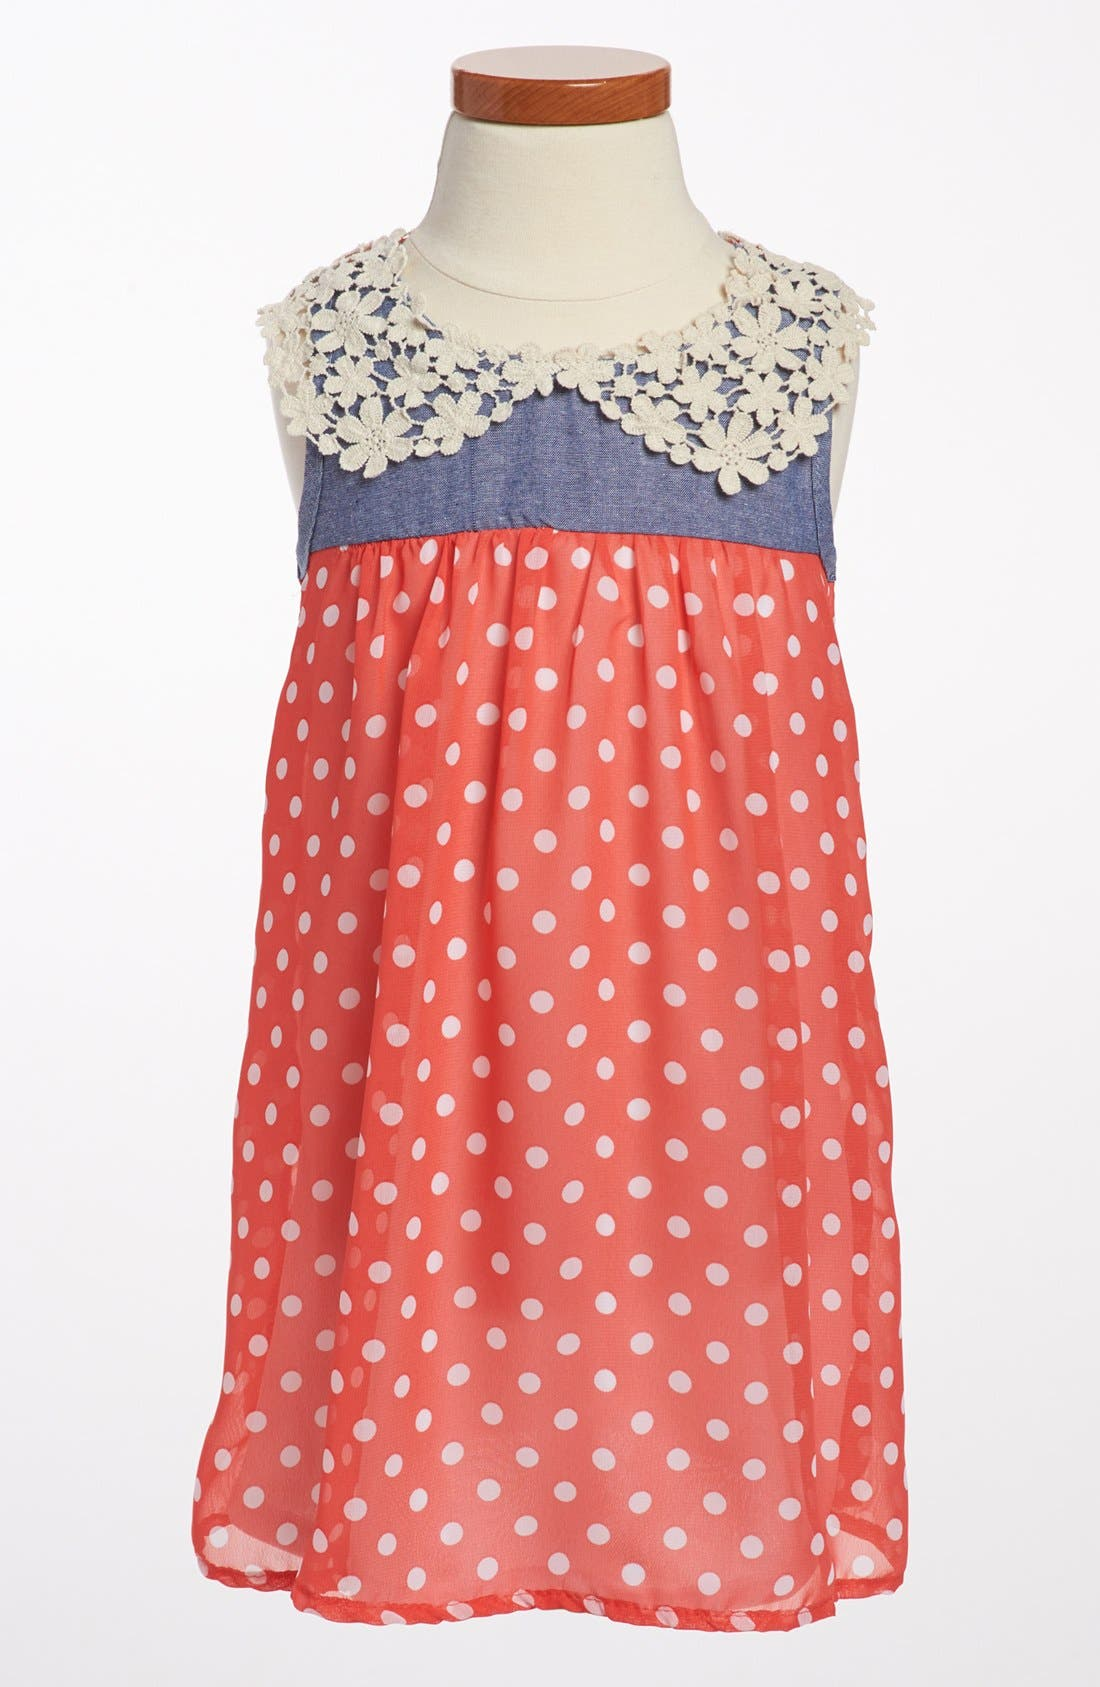 Main Image - Jenna & Jessie Polka Dot Chiffon Dress (Toddler Girls)